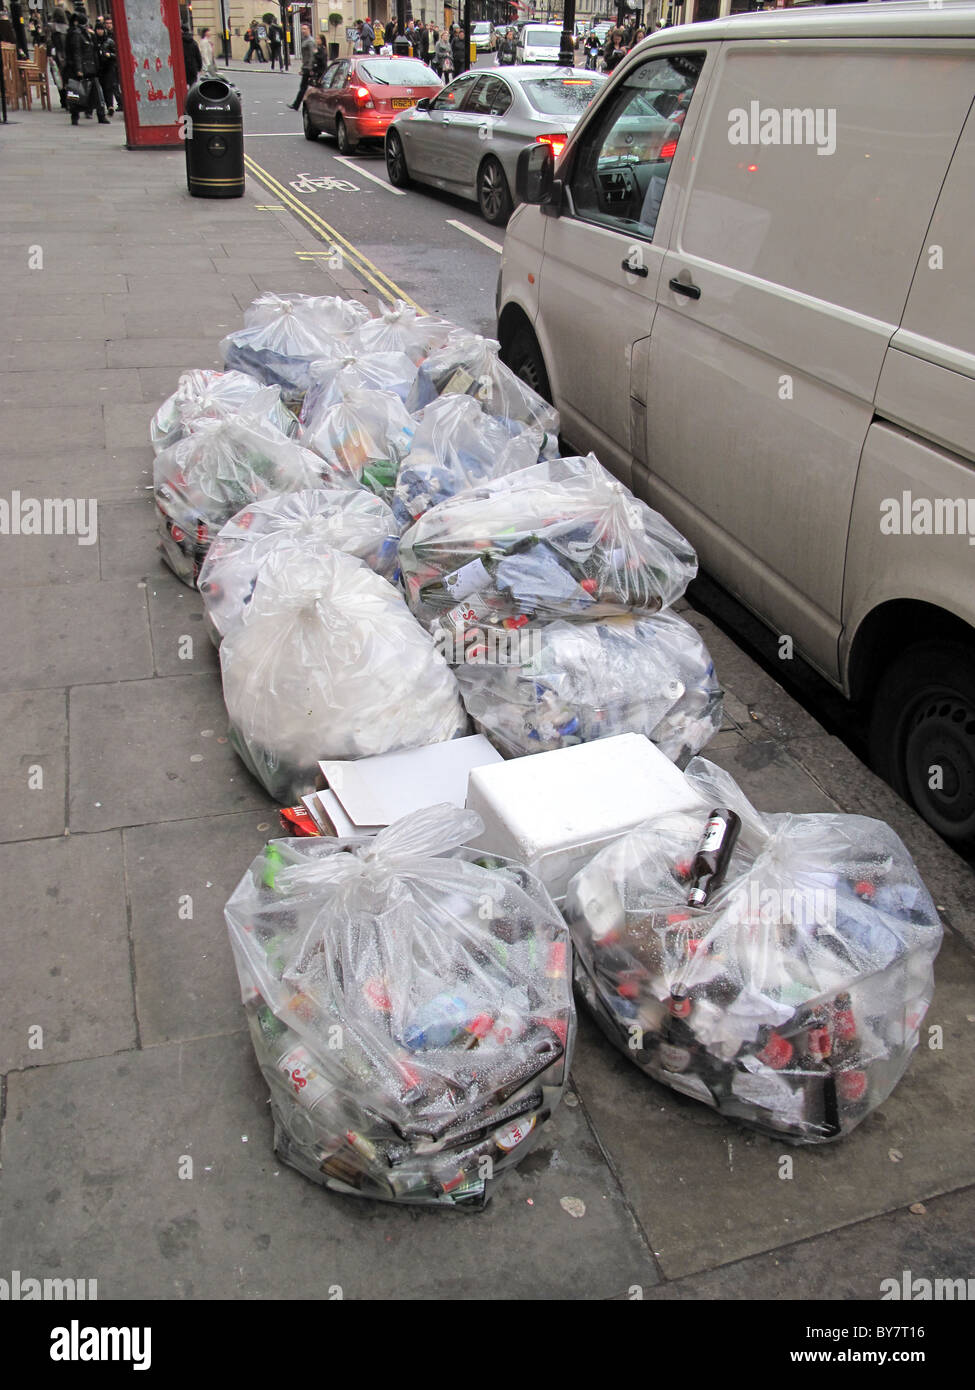 Rubbish bags waste bin bags recycle litter mess - Stock Image